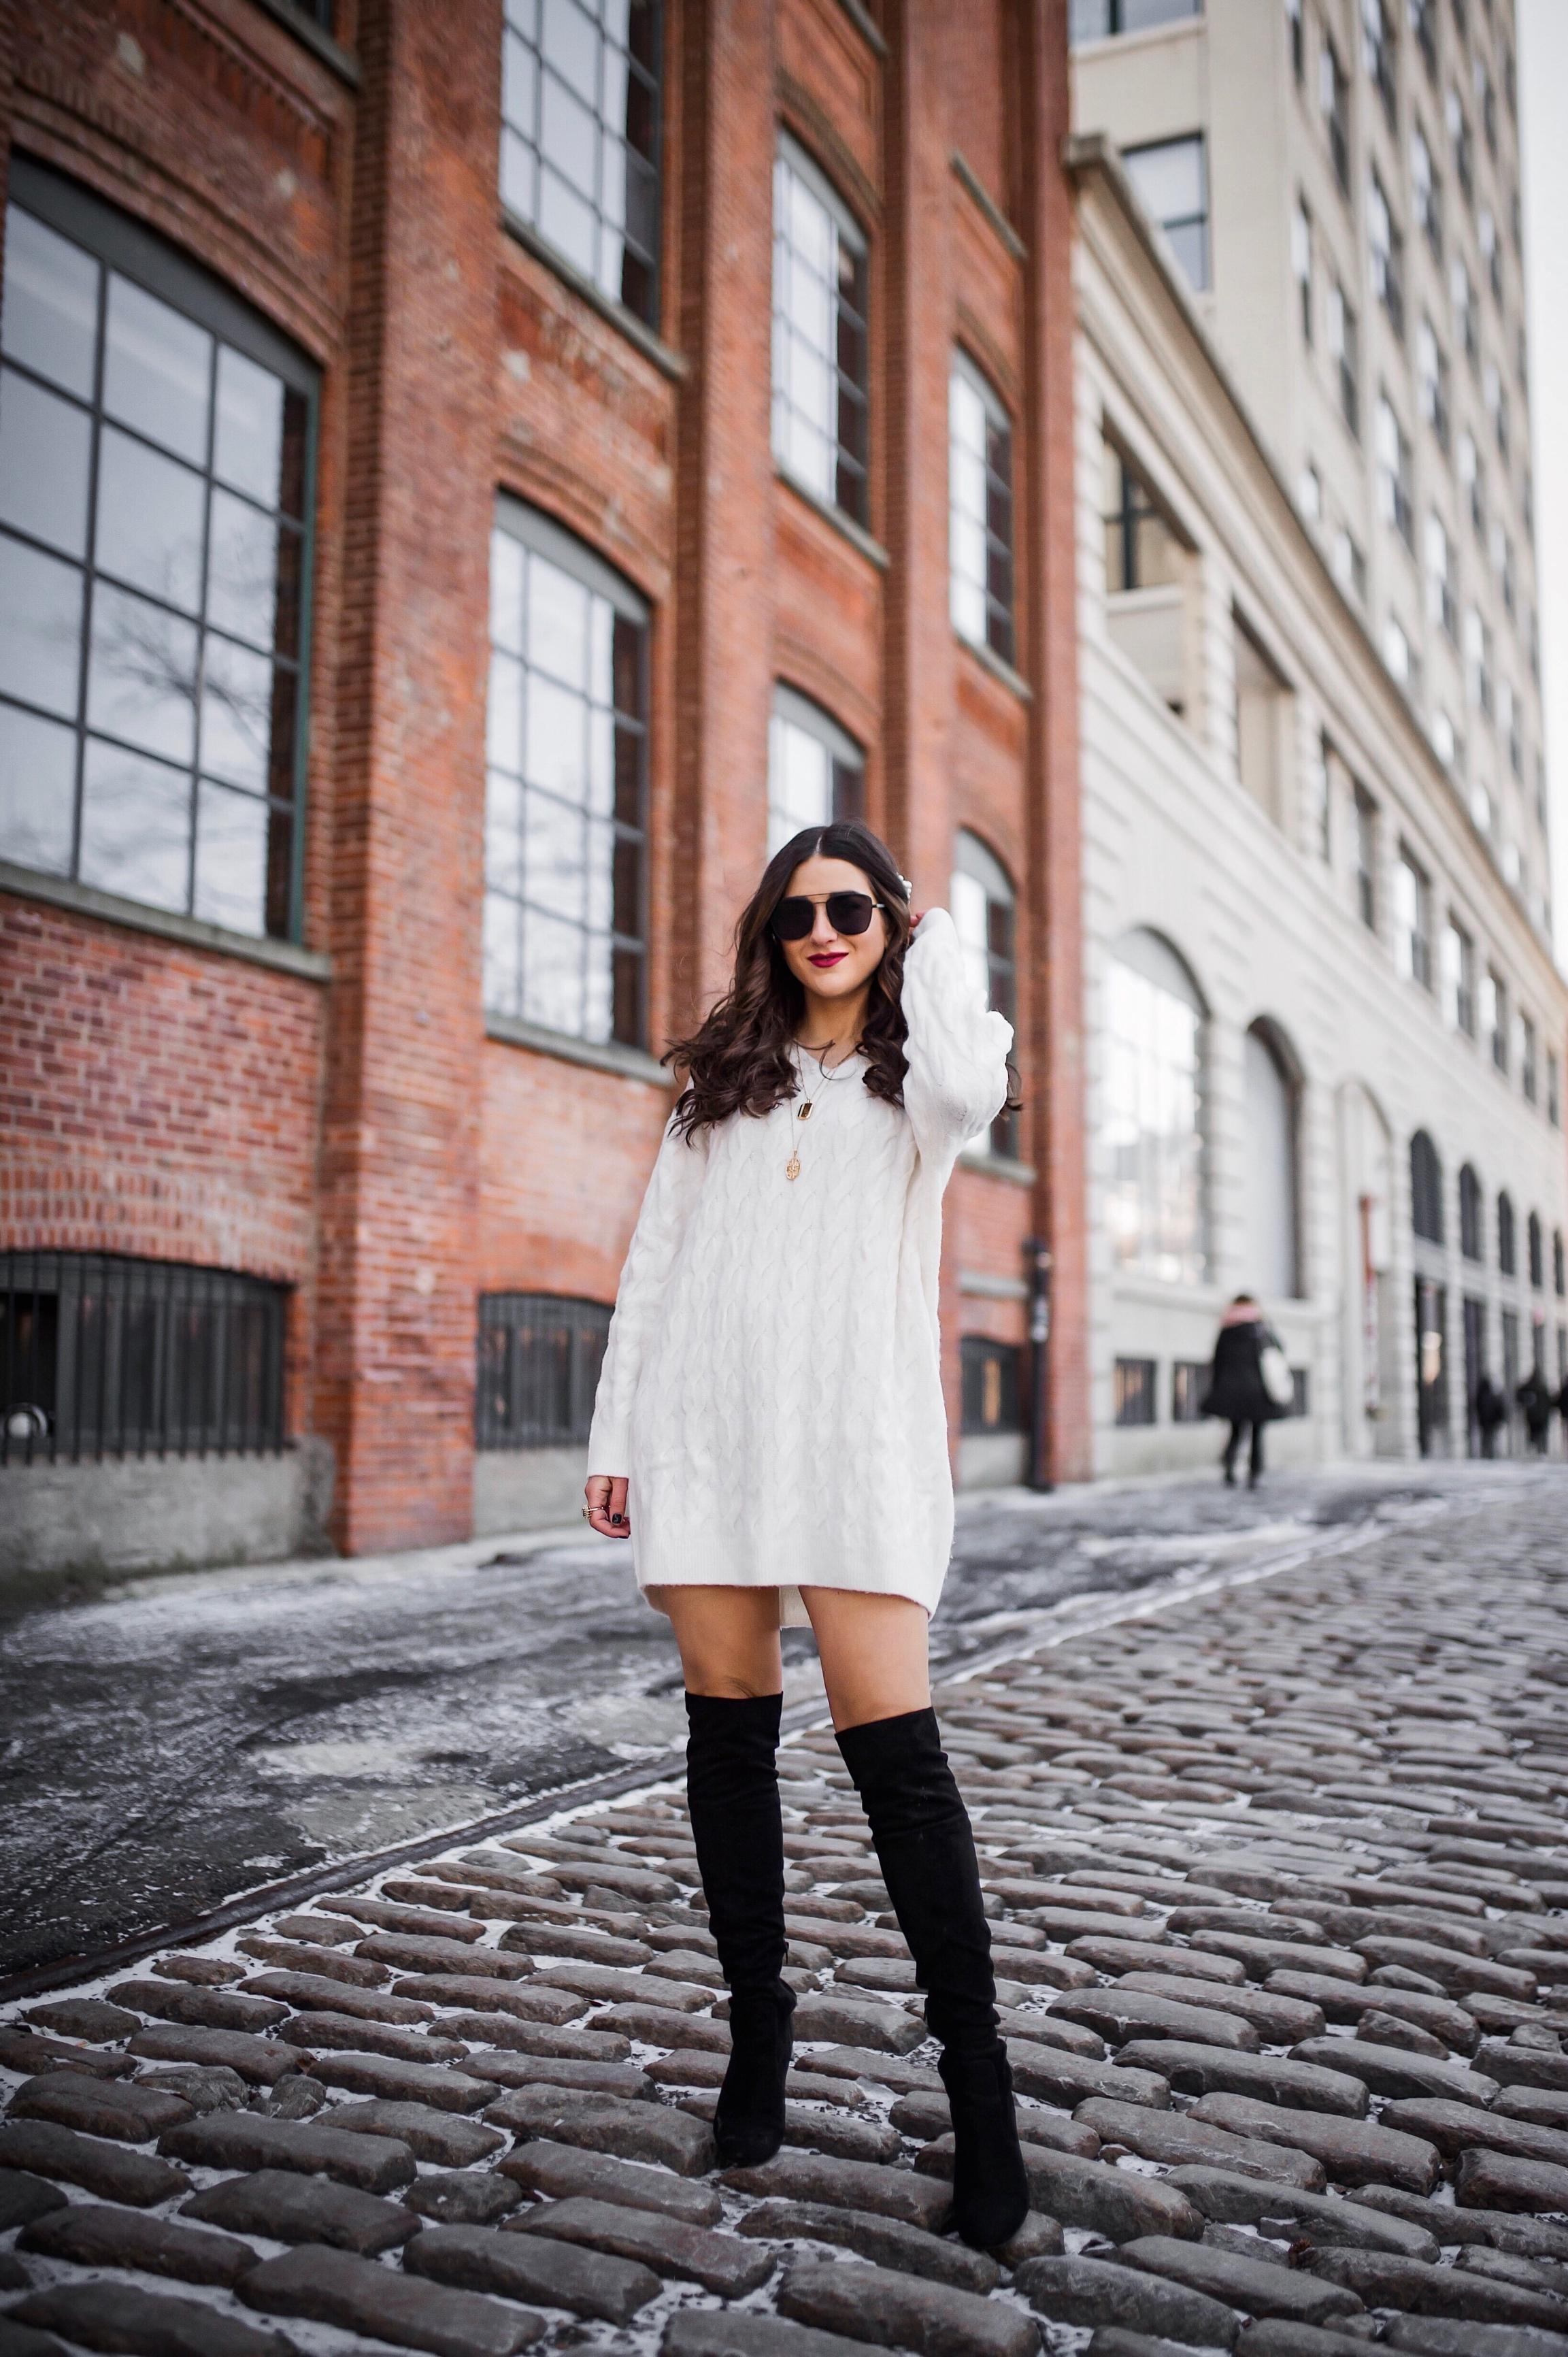 Are You Making This Business Mistake? Chunky White Sweater Dress Over The Knee Boots Esther Santer Fashion Blog NYC Street Style Blogger Outfit OOTD Trendy Shopping Girl What How Wear Industry Relationships Mindset Work Career Important Lesson  Boots.JPG